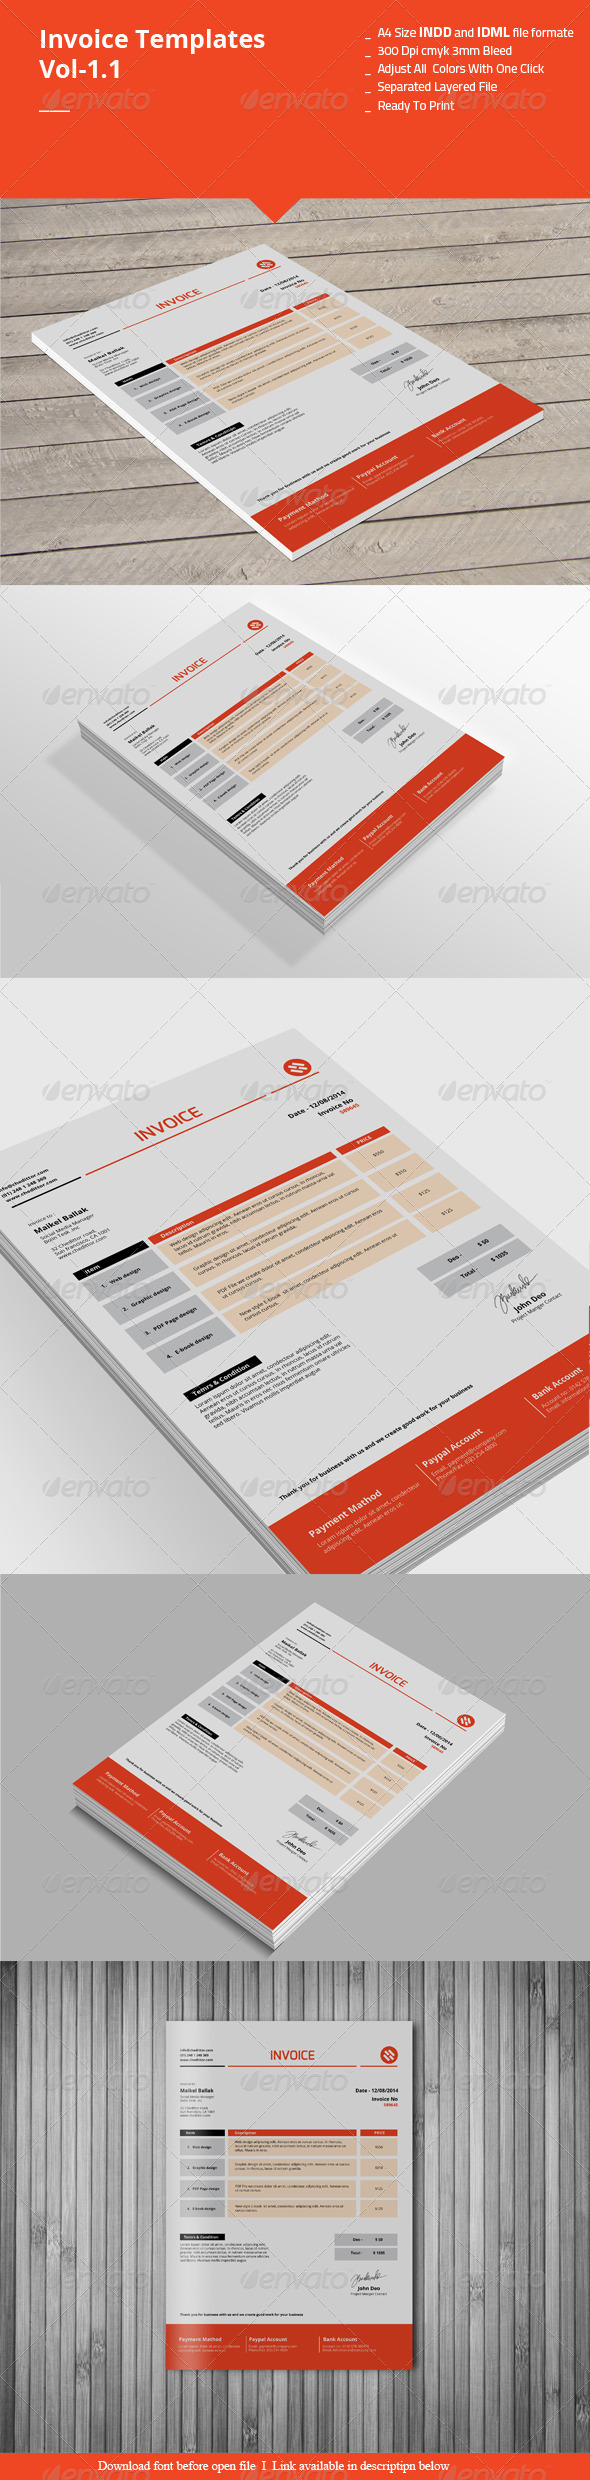 GraphicRiver Invoice Templates Vol-1.1 8437185